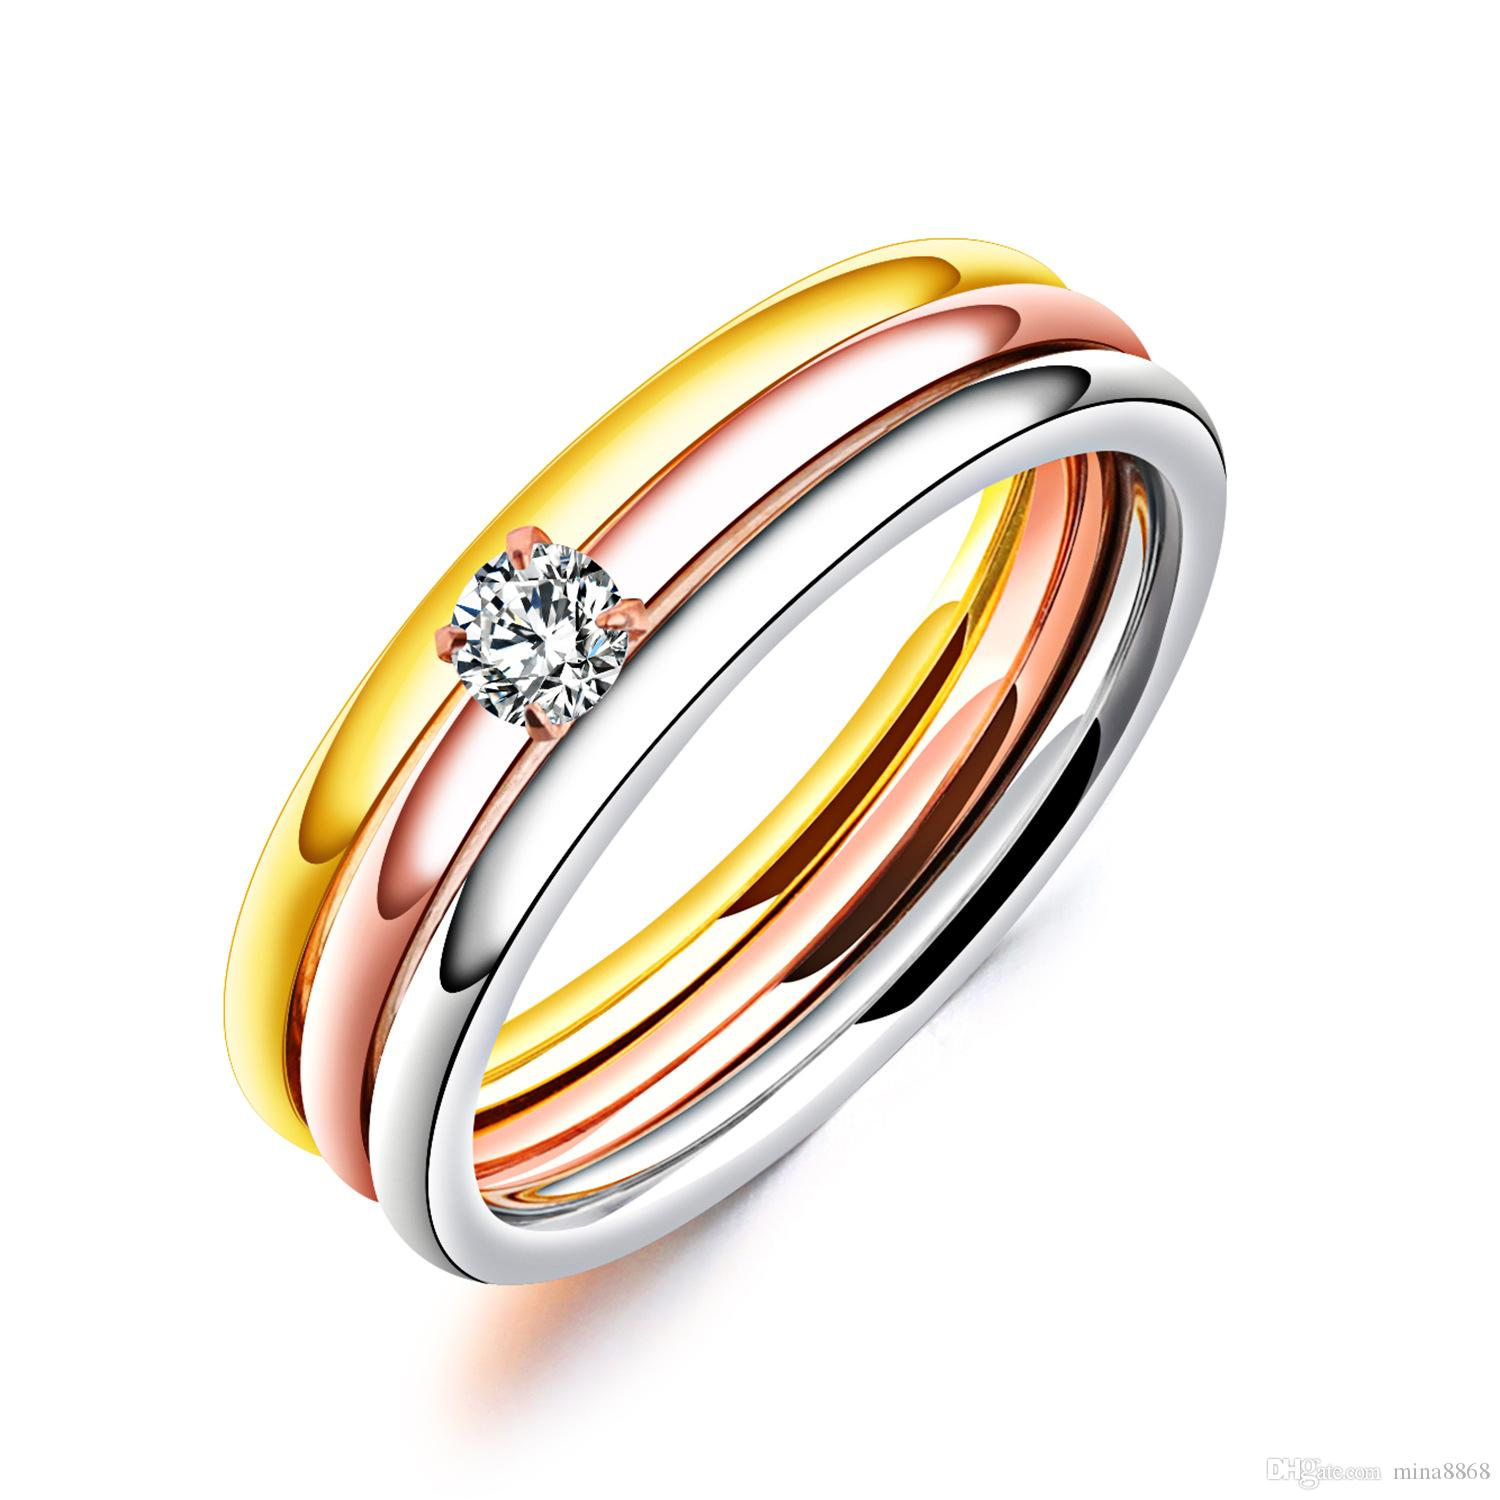 city verma engagement group the amber atlantic rings products